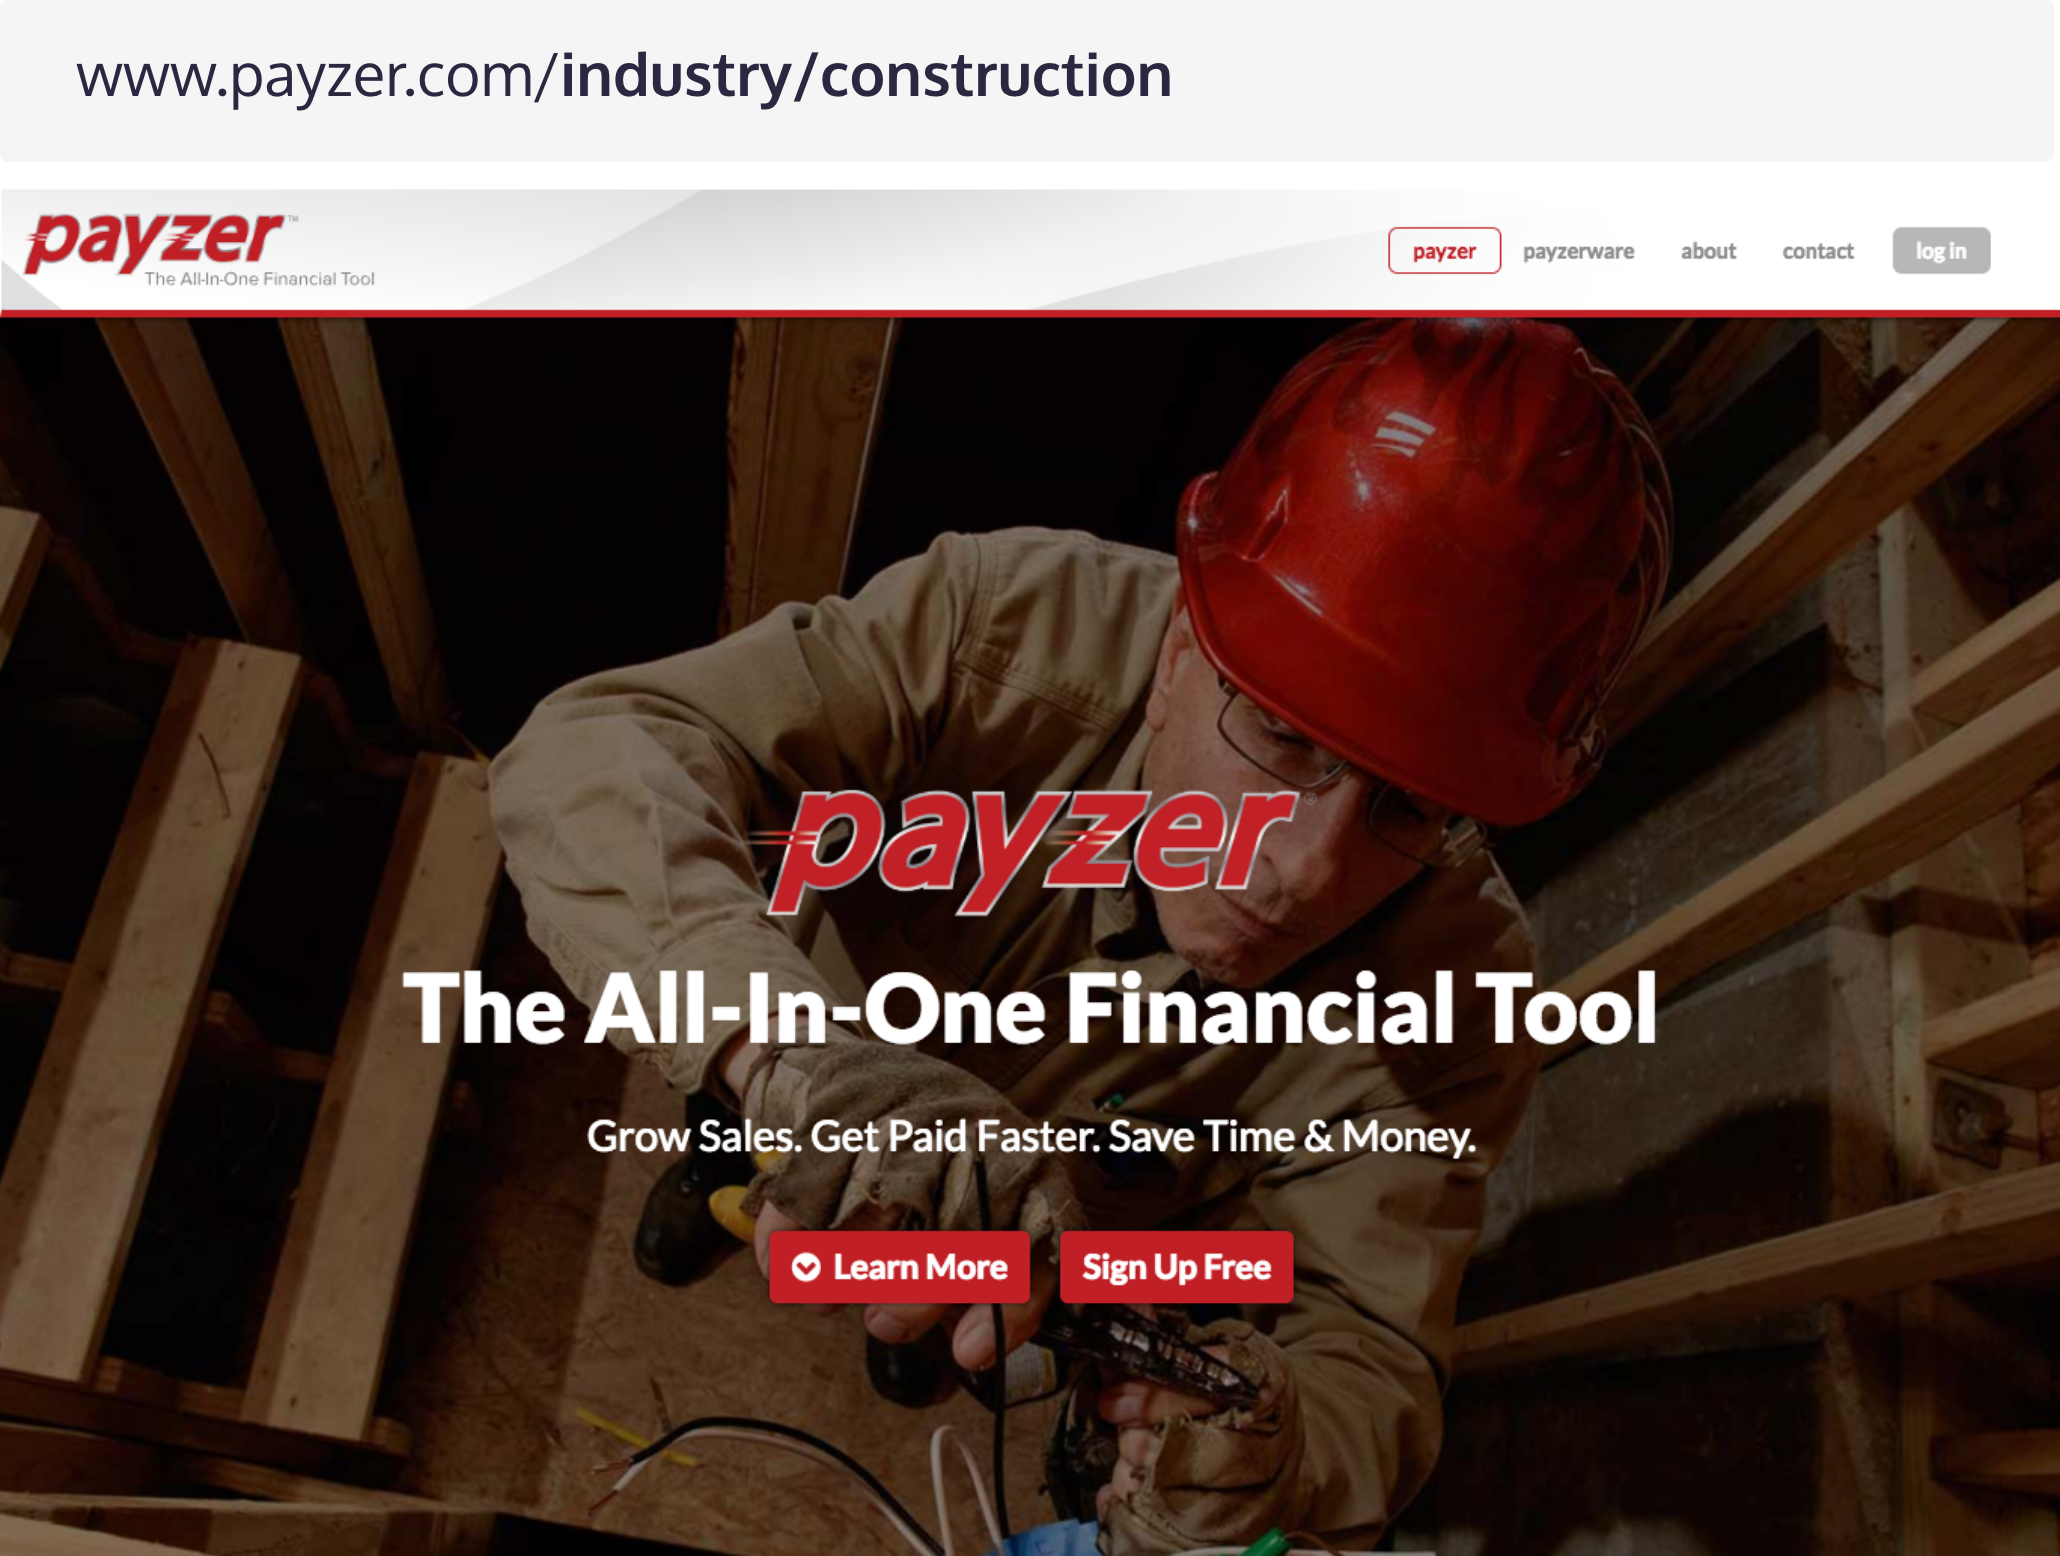 Industry Web Pages B2B Lead Generation - Payzer